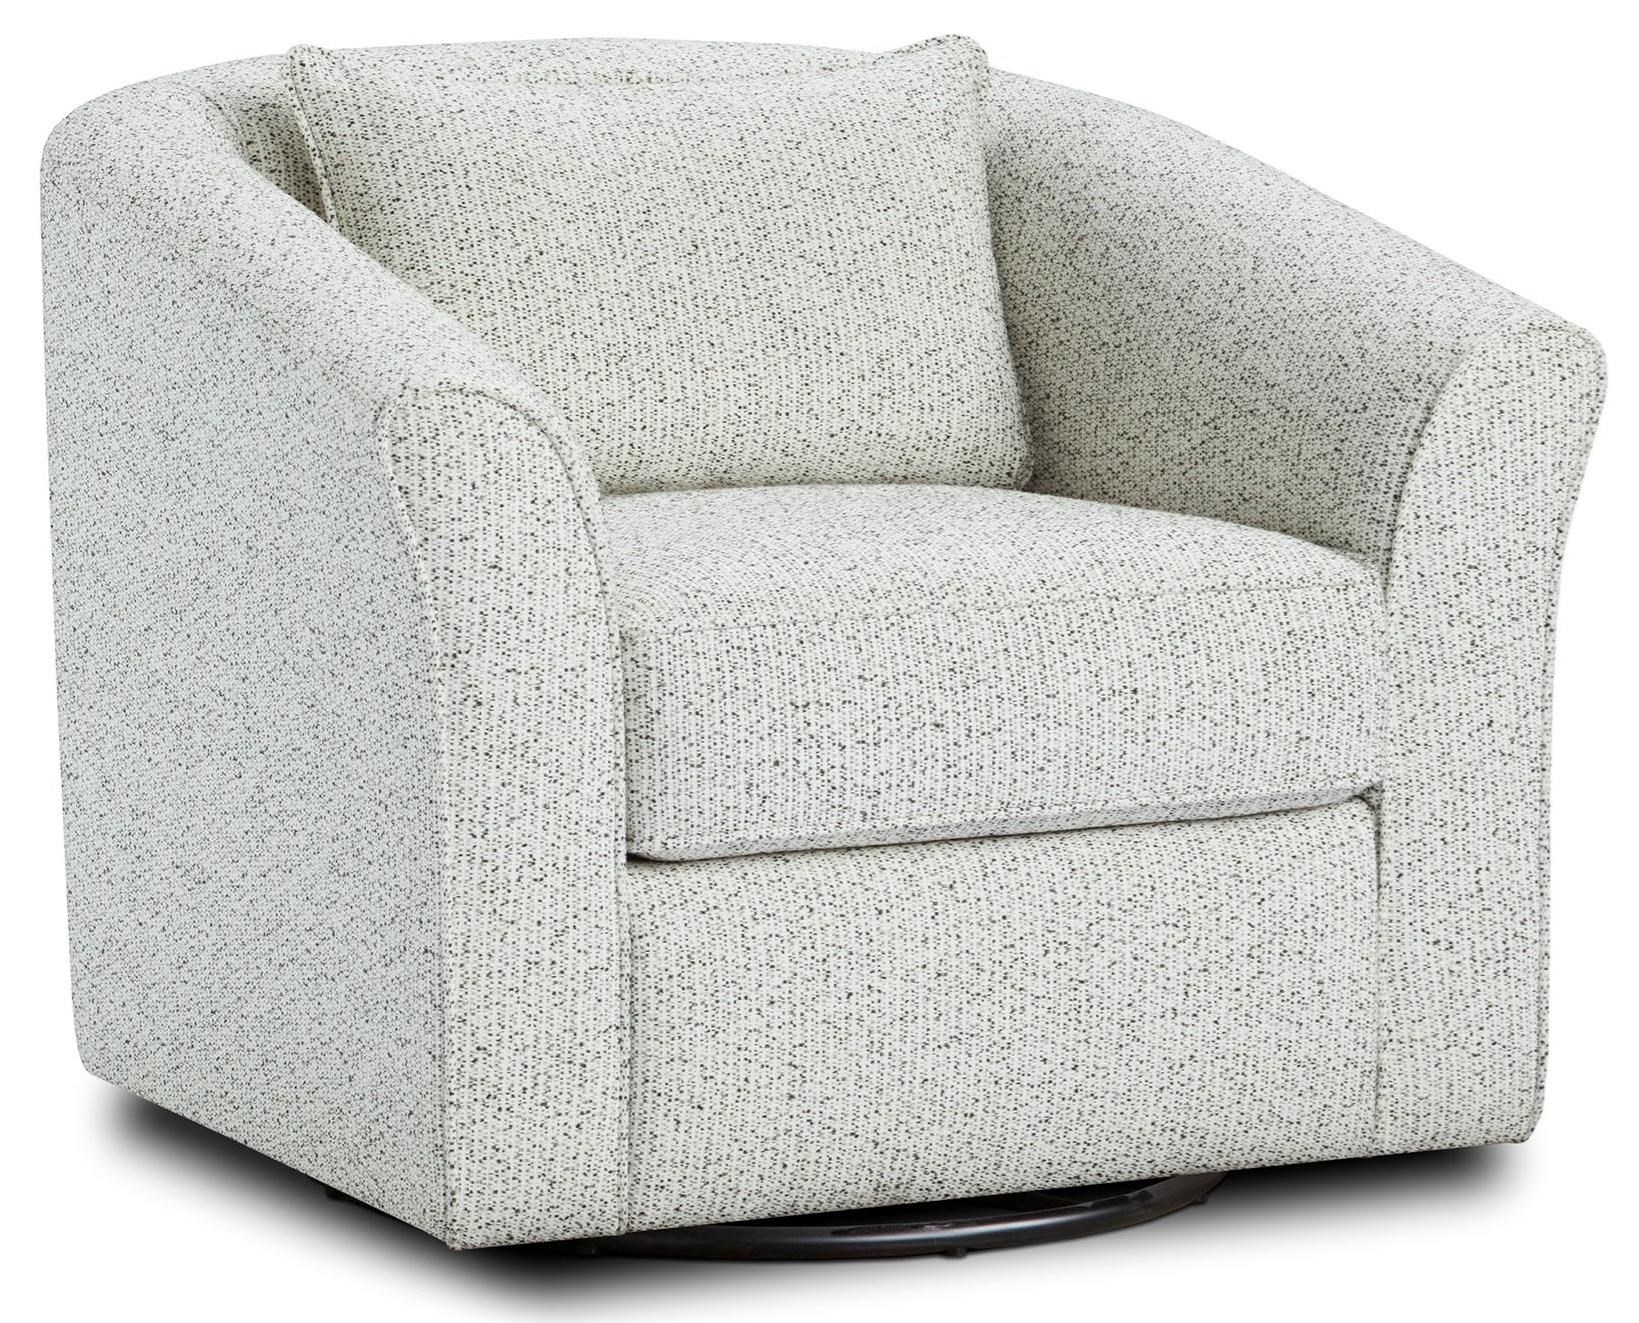 53-02 Swivel Chair by Fusion Furniture at Furniture Superstore - Rochester, MN